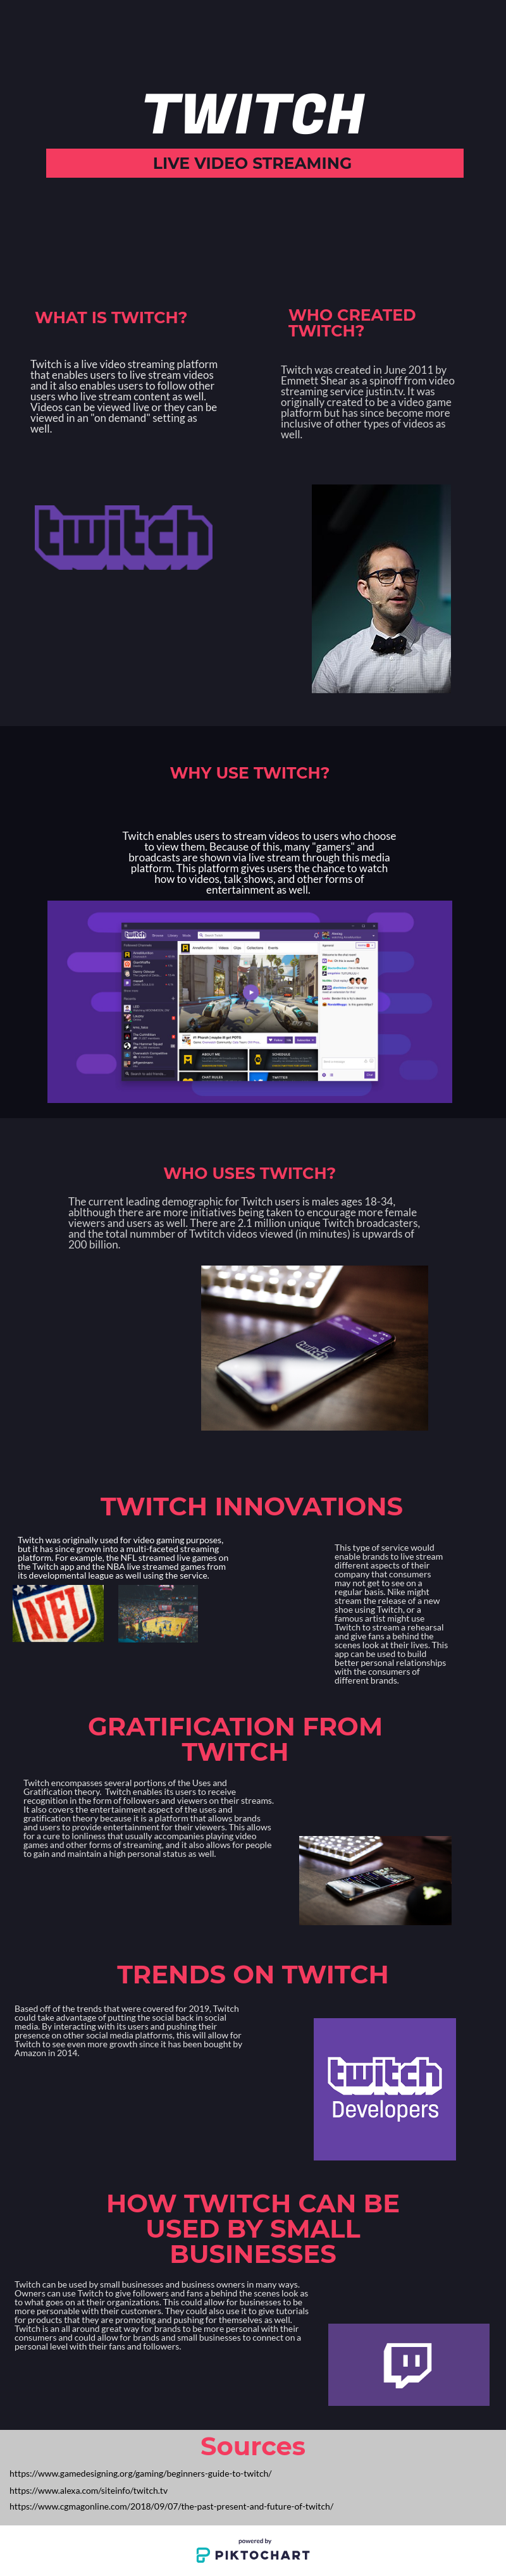 twitch infographic